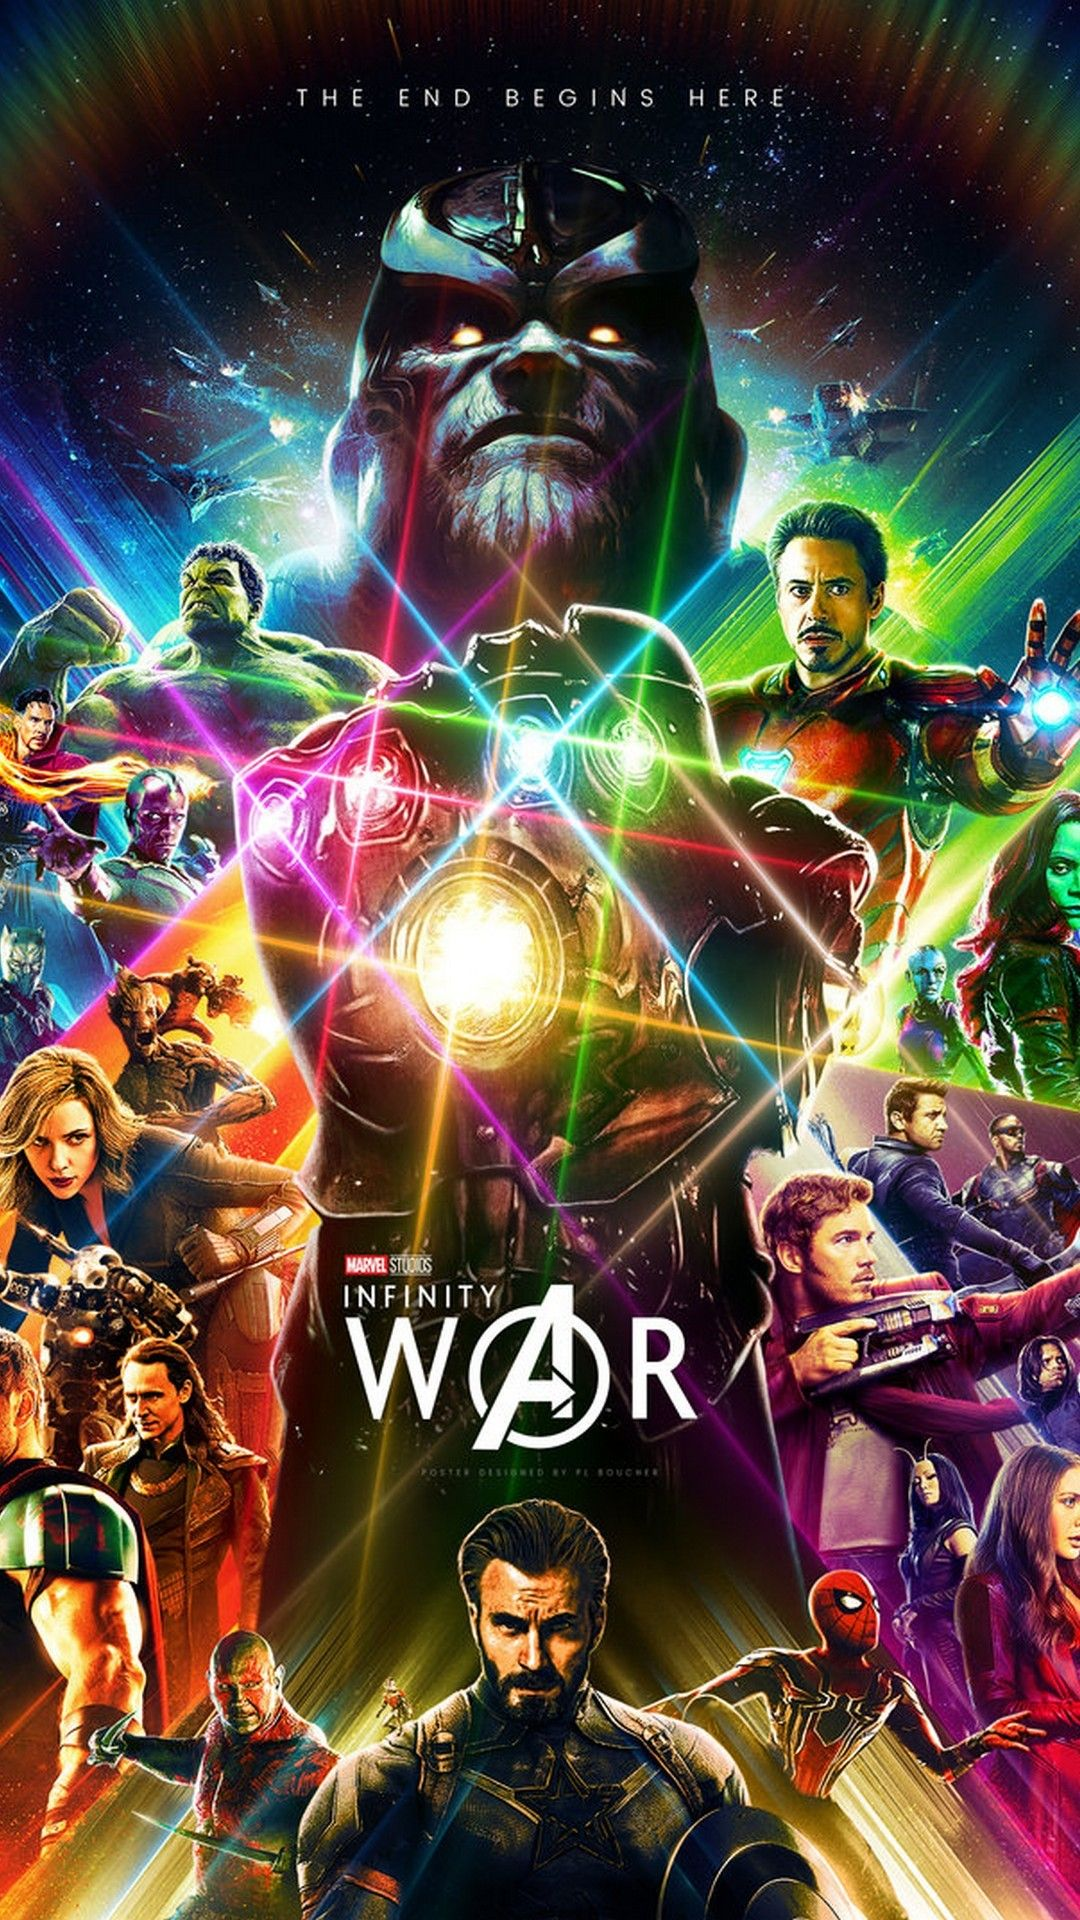 Avengers Infinity War Wallpaper Android Marvel posters Marvel 1080x1920